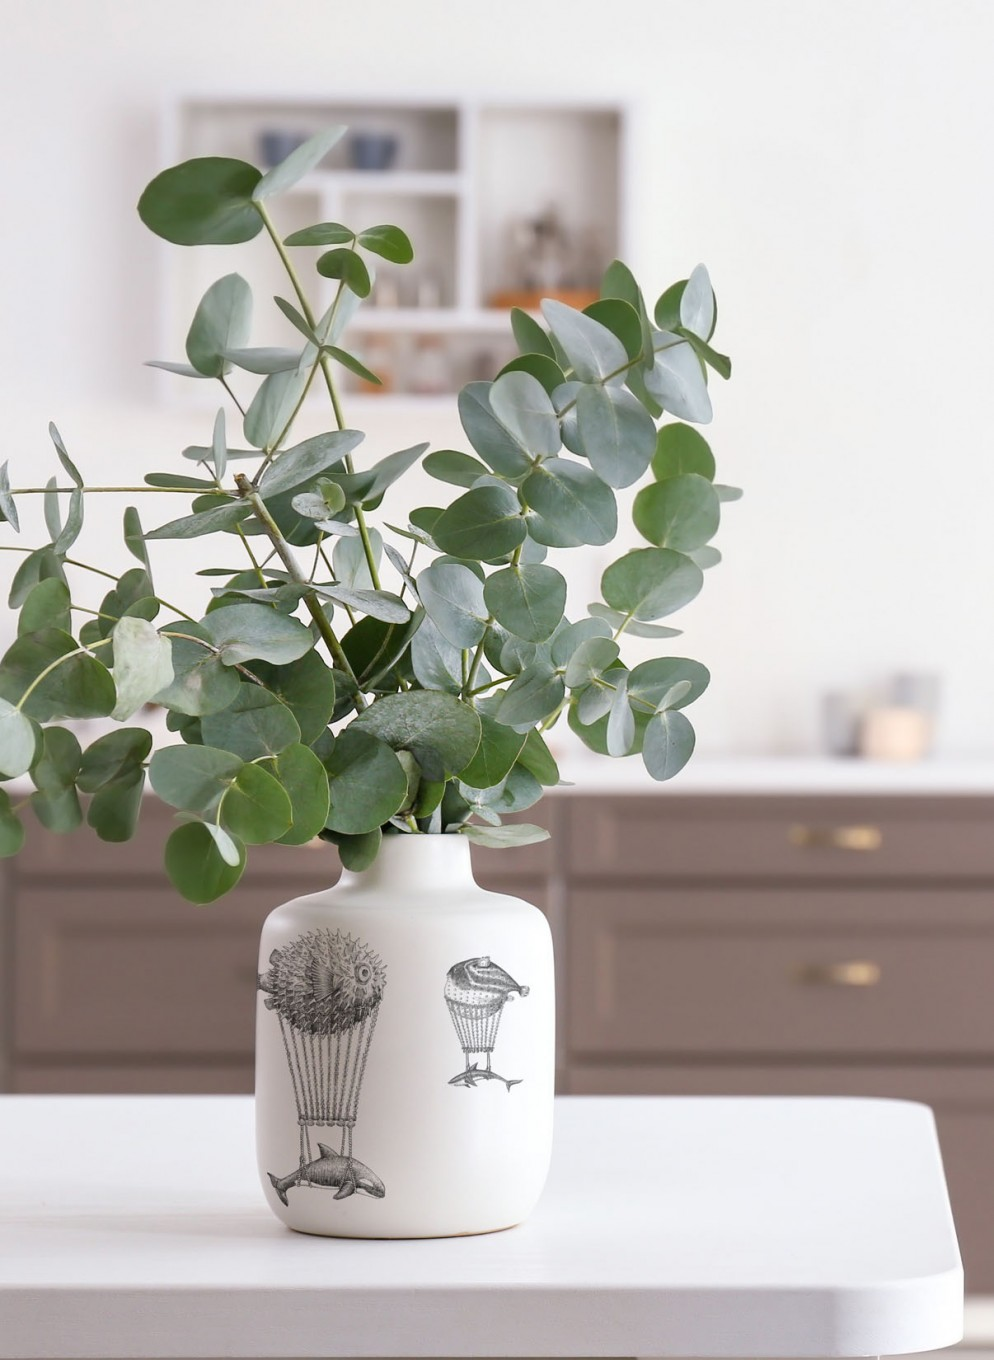 Vase with eucalyptus branches on table in kitchen